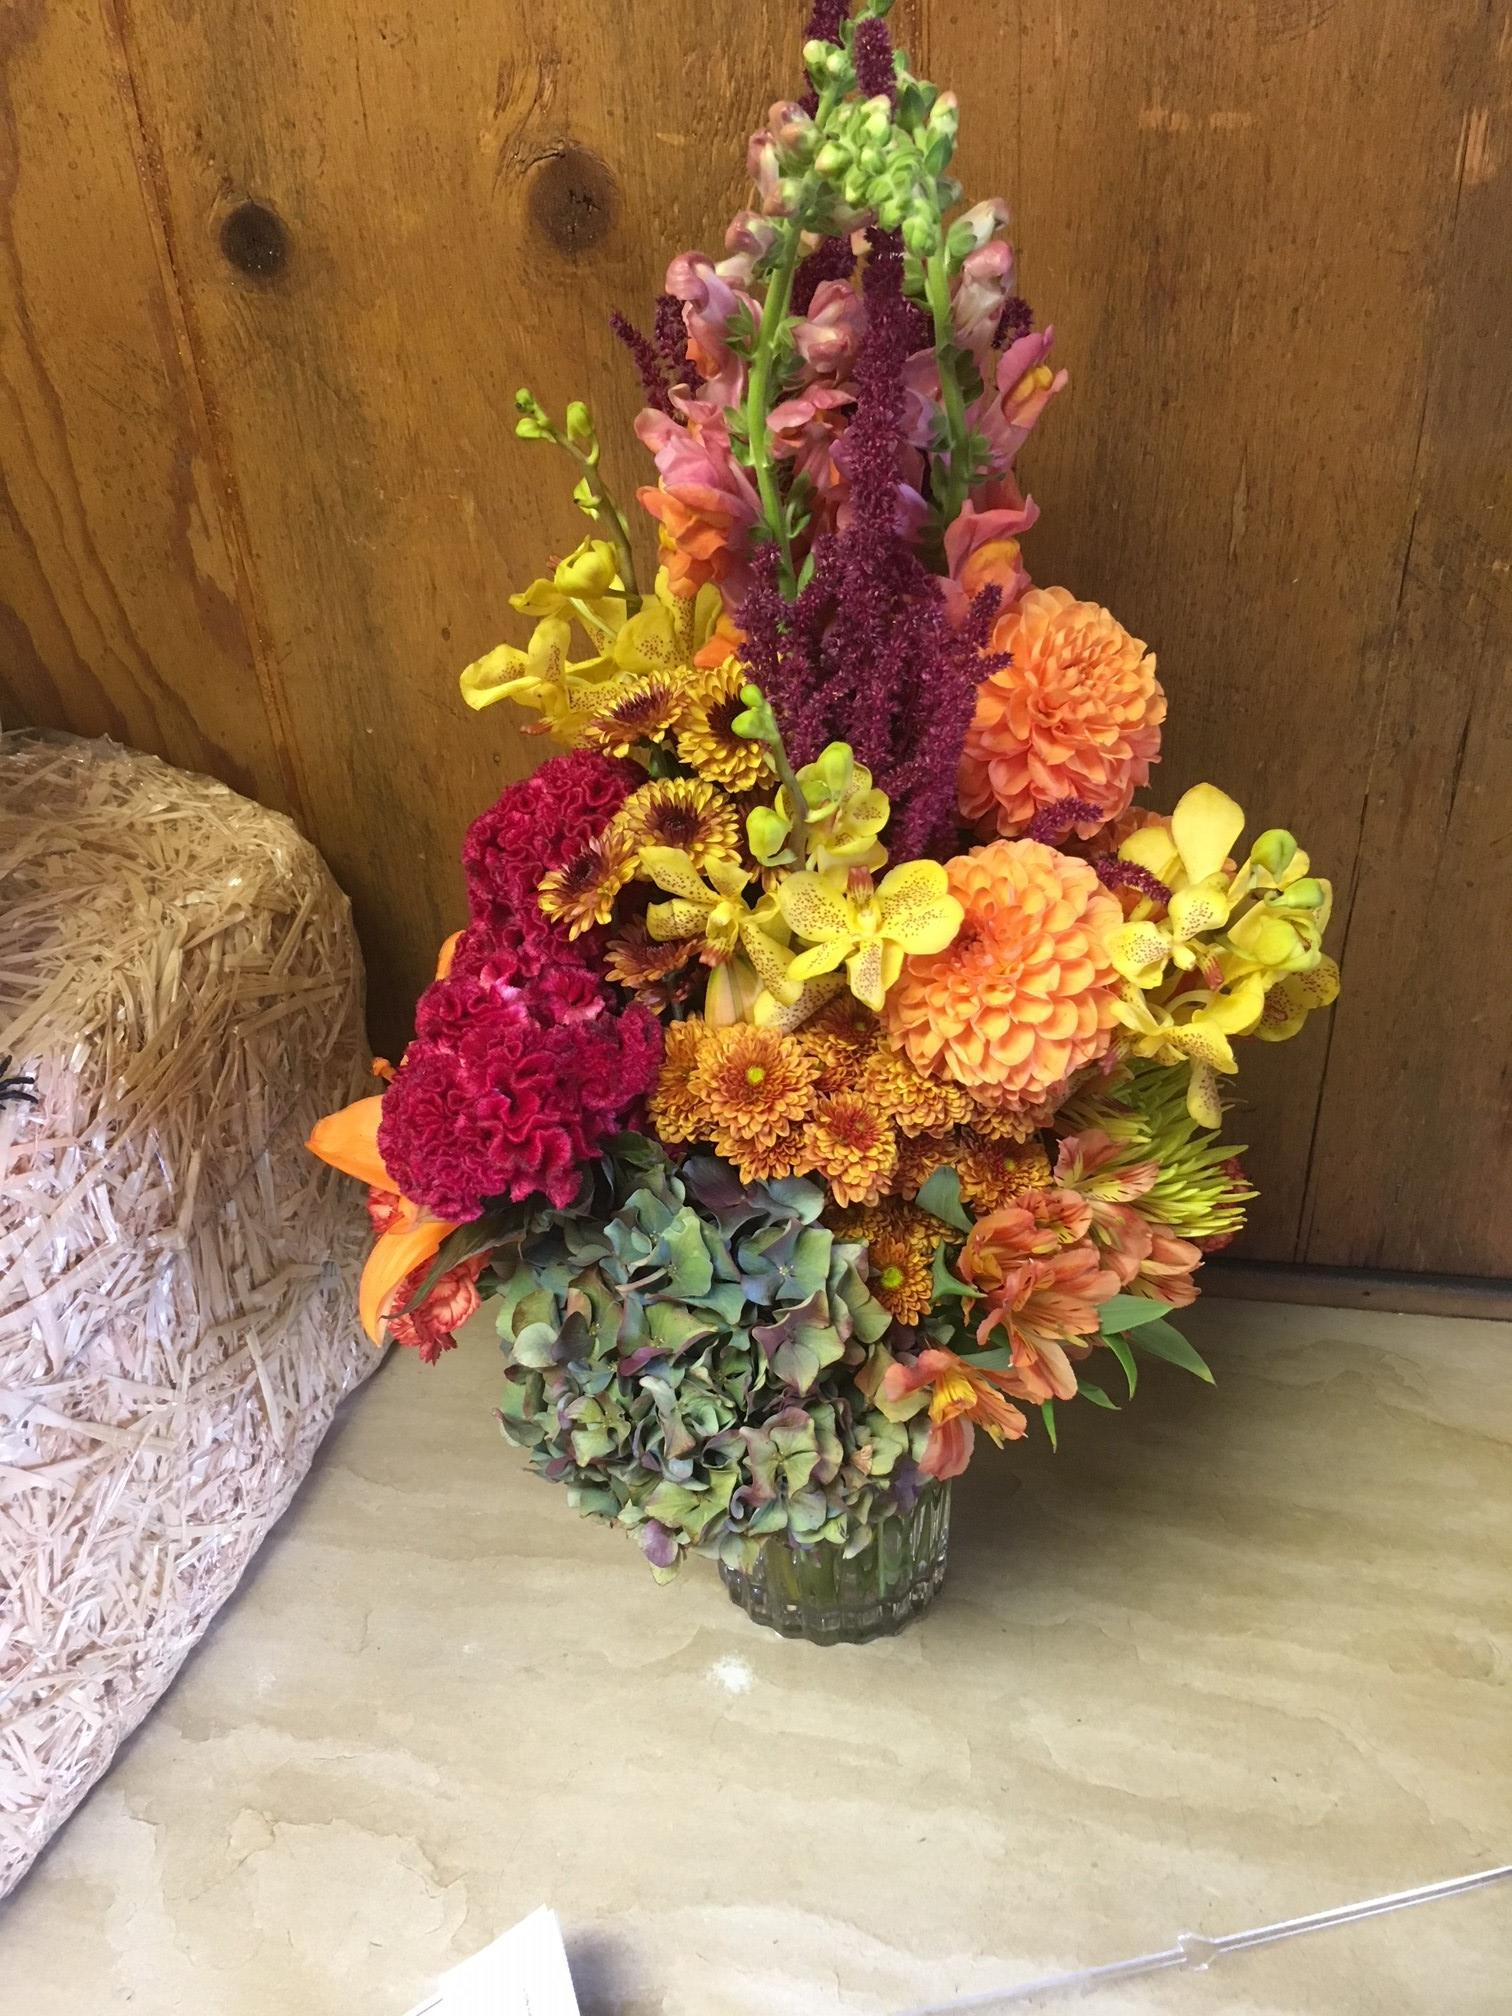 Heights Floral Shop image 4